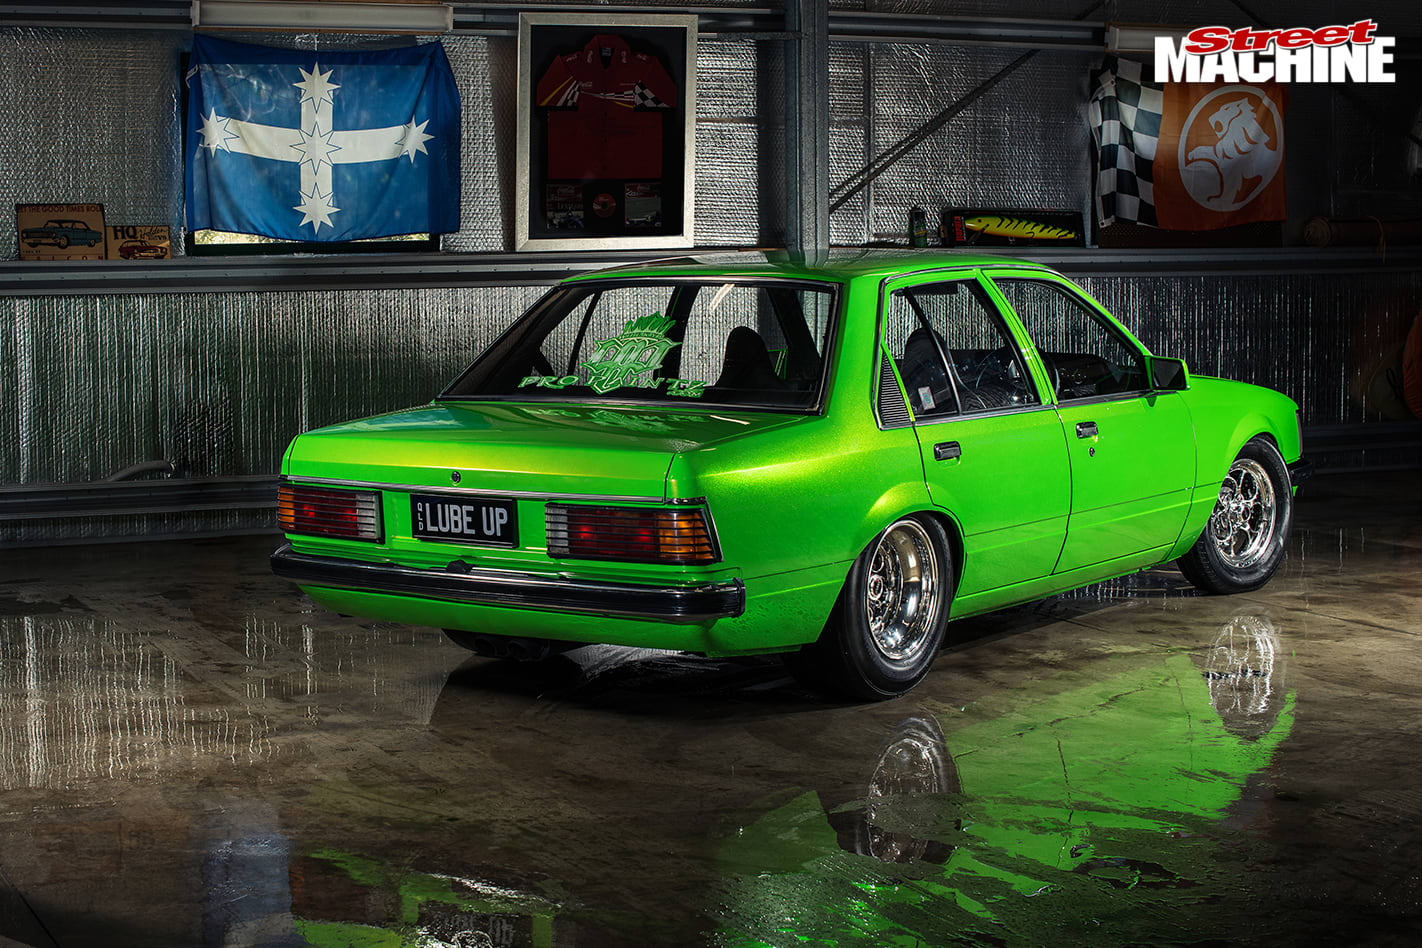 202-POWERED-1983-HOLDEN-VH-COMMODORE-rear